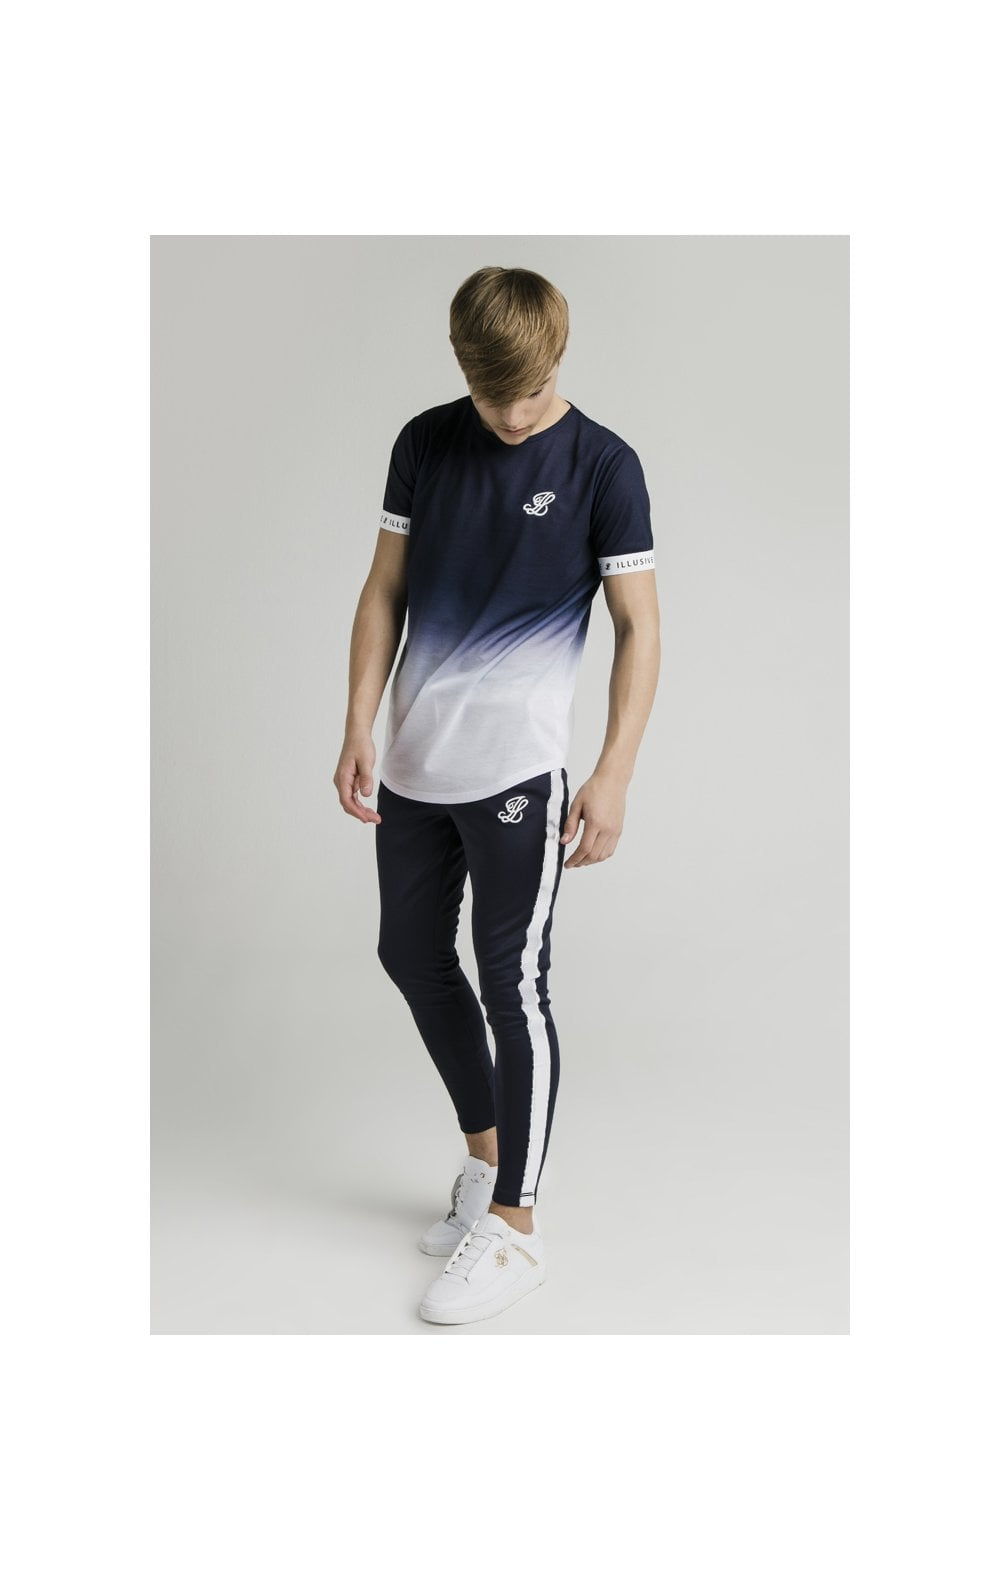 Load image into Gallery viewer, Illusive London Athlete Joggers - Navy & White (5)